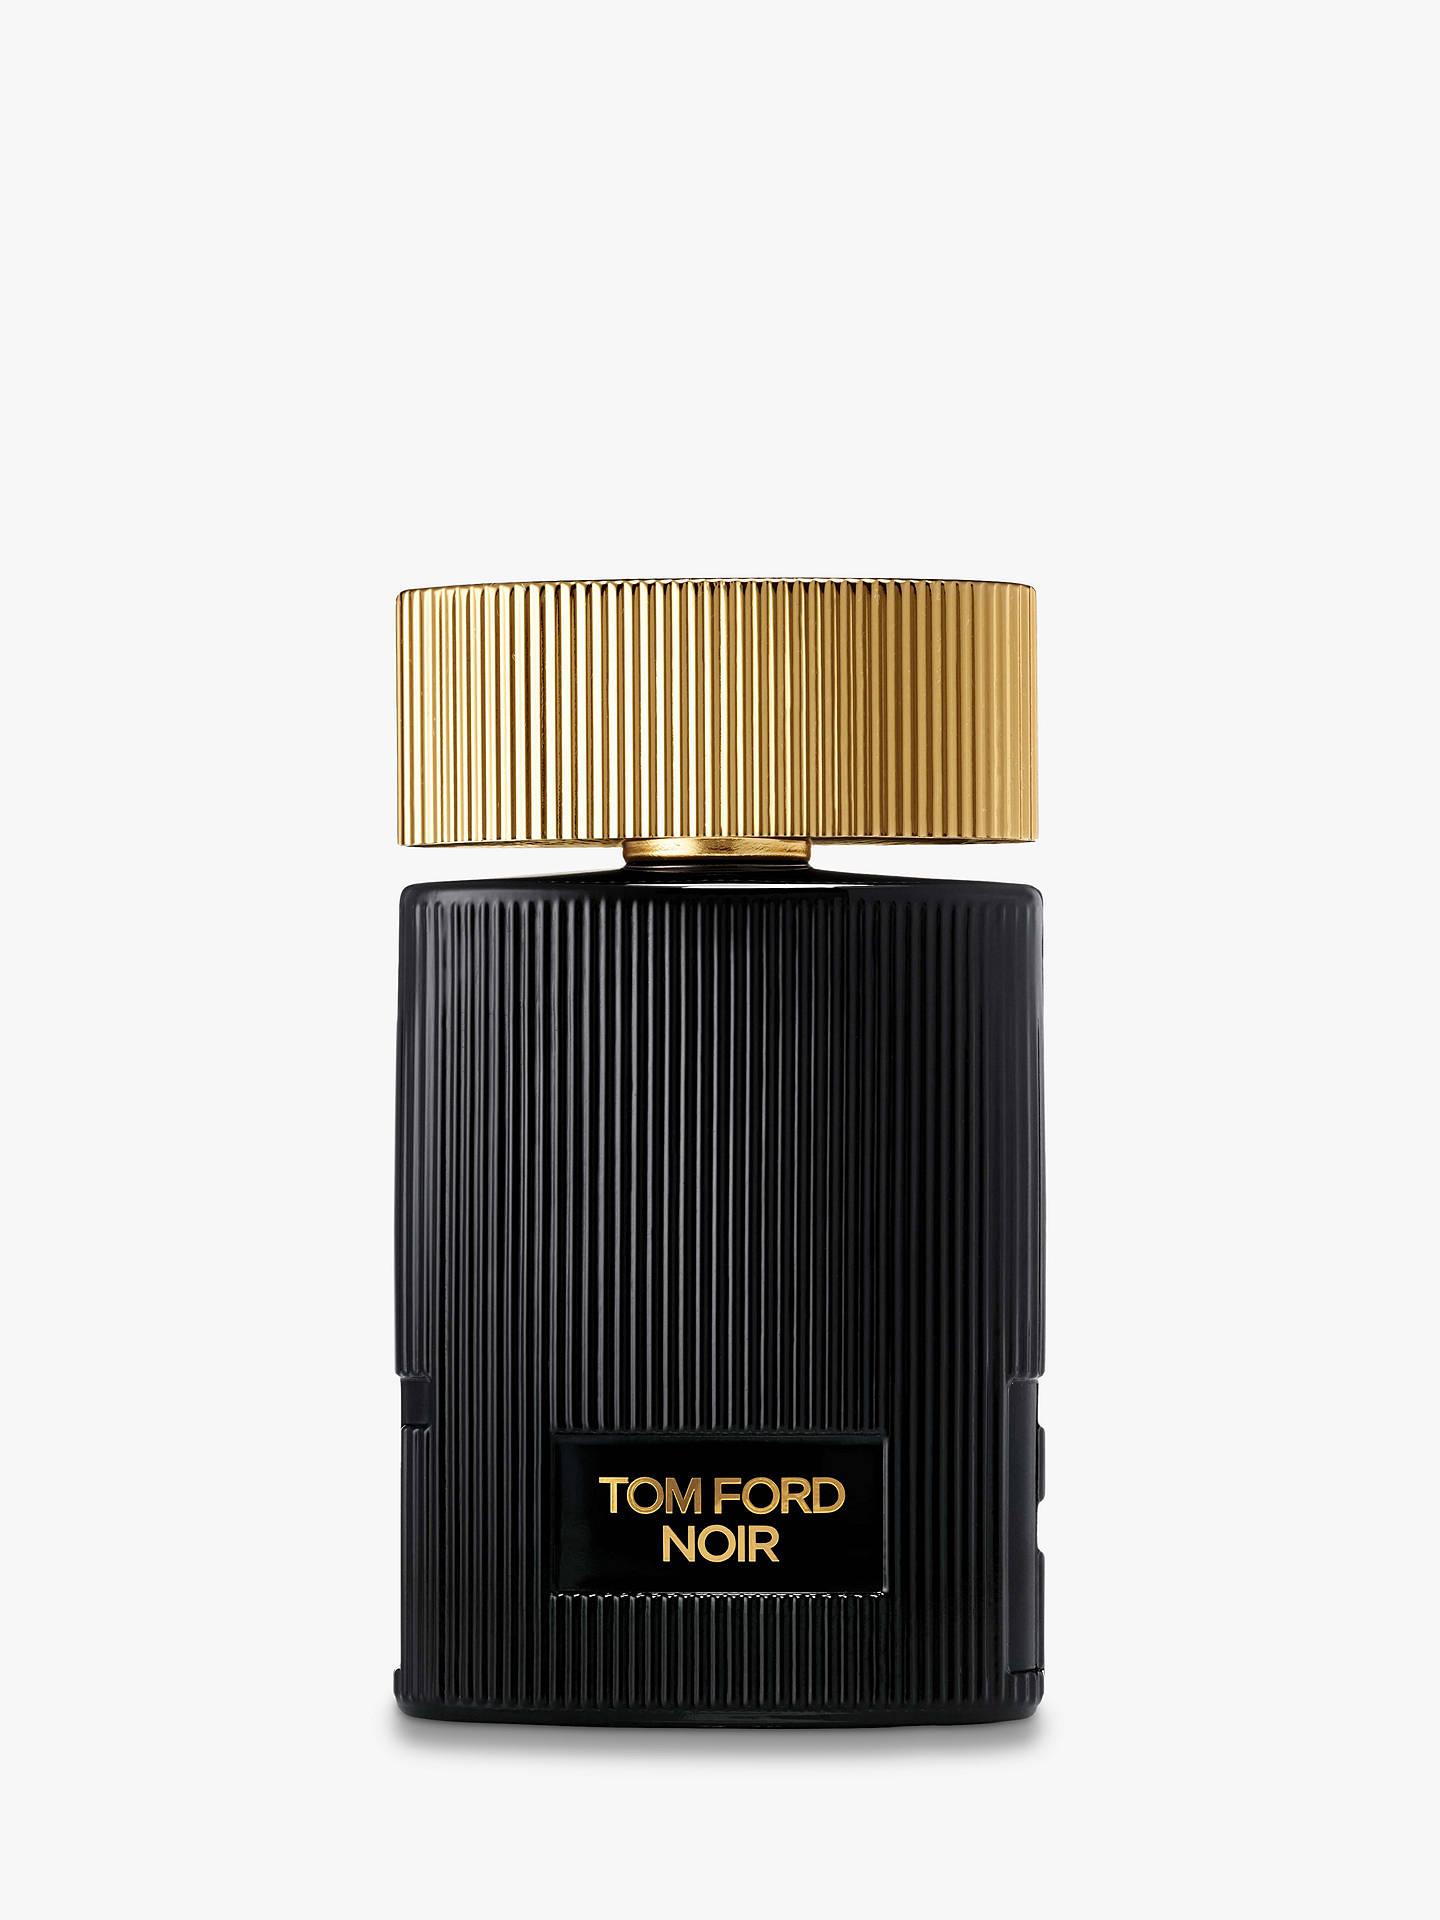 TOM FORD Noir Eau de Parfum at John